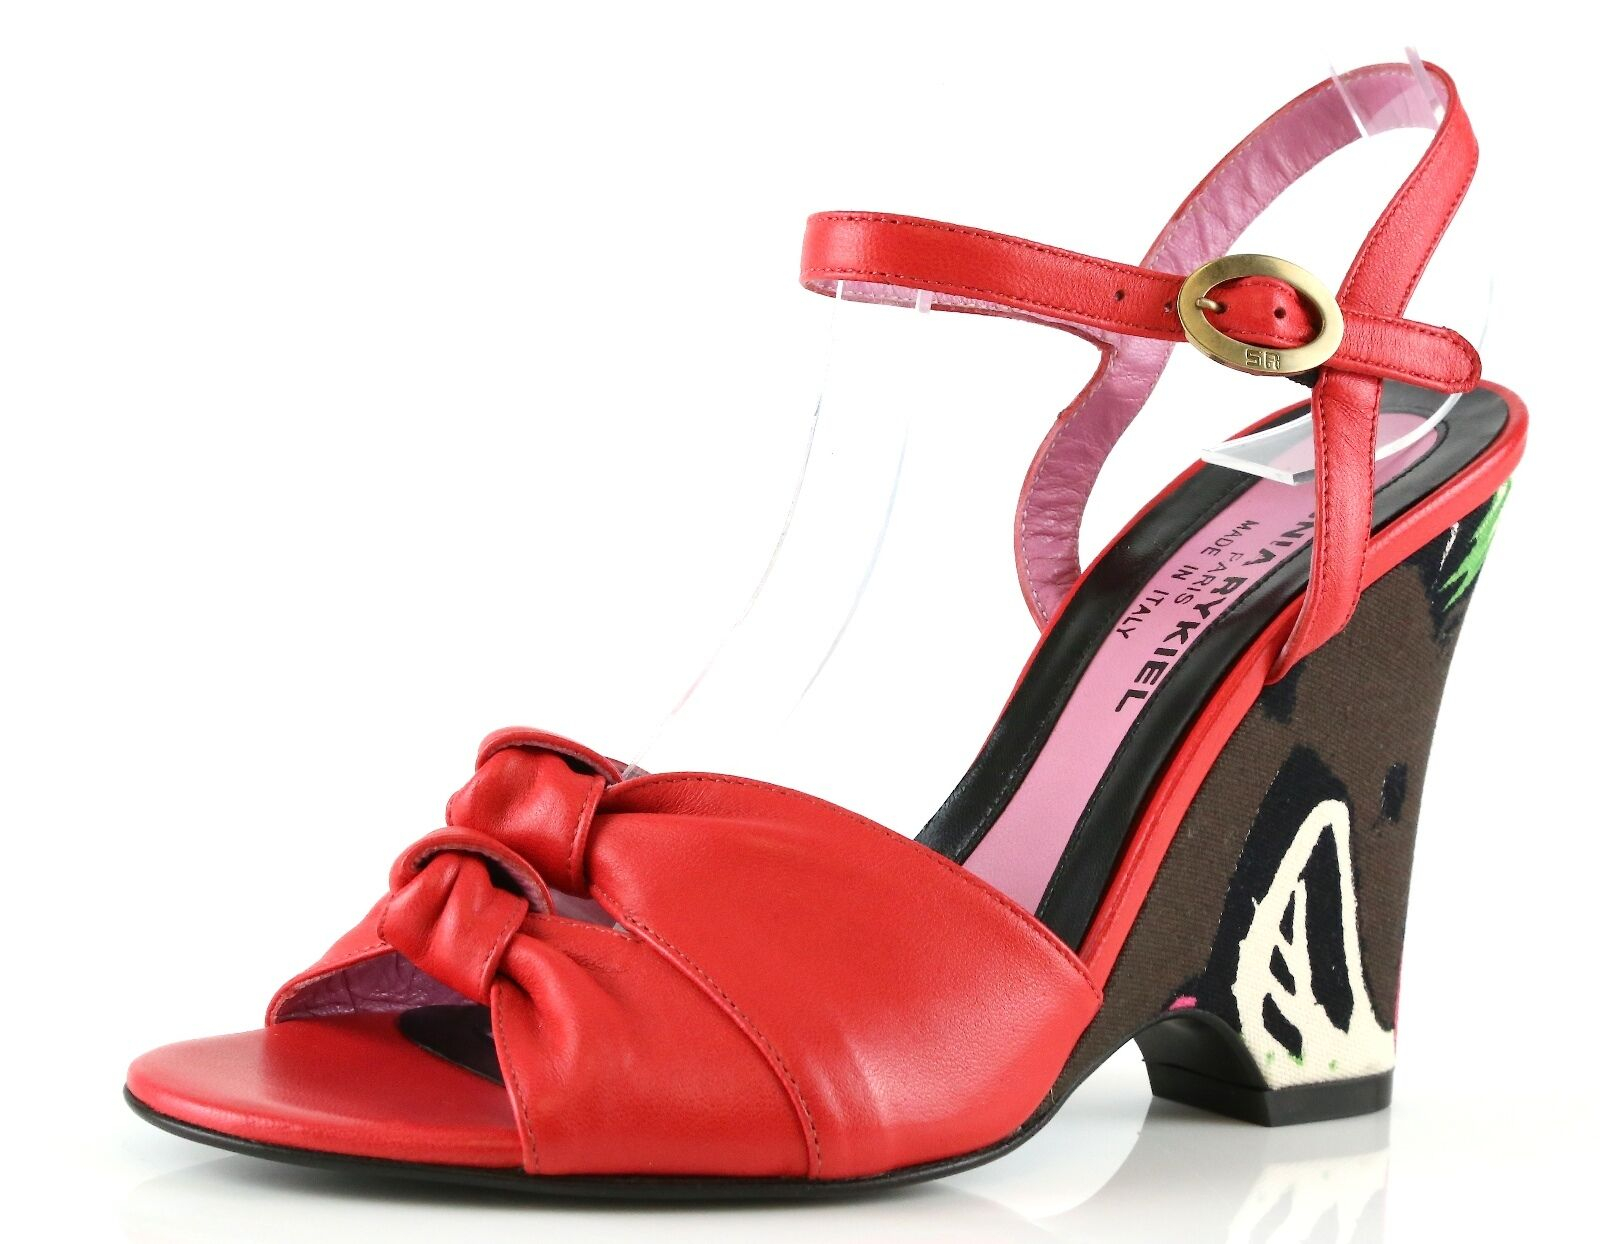 Sonia Rykiel NAPPA Red Leather Ankle Strap Wedge Sandals 8881 Size 36 EU NEW 495